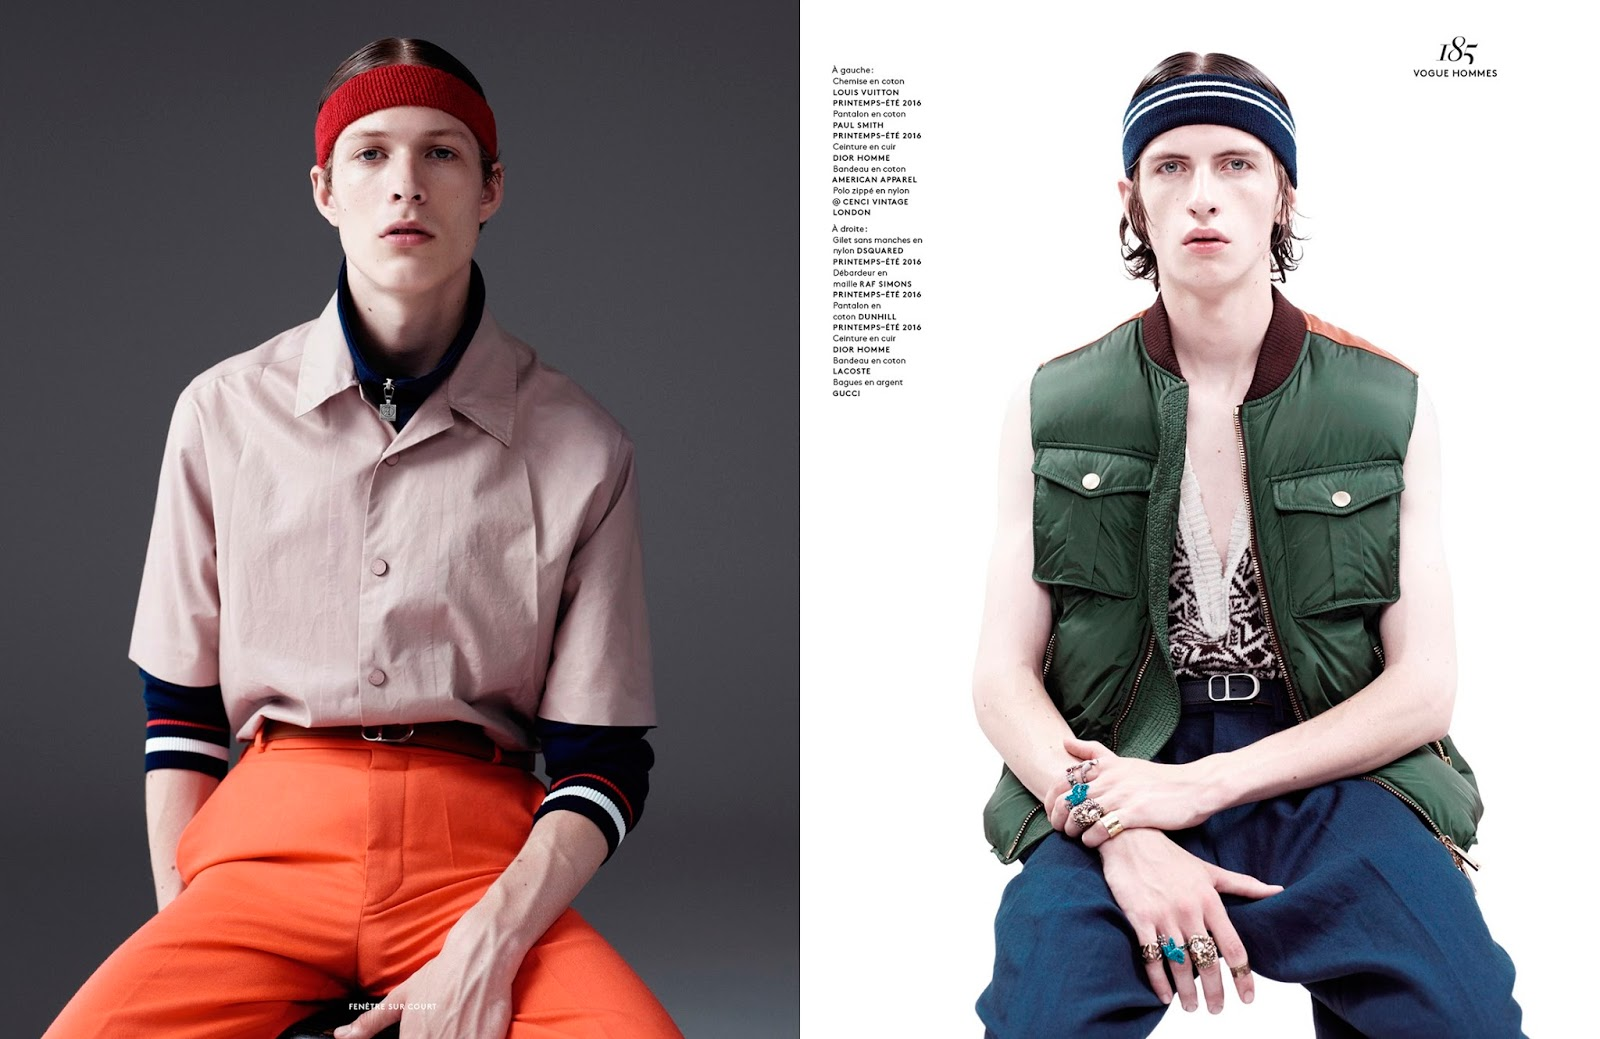 Fenêtre sur Court: Willy Vanderperre Goes Sporty for Vogue Hommes